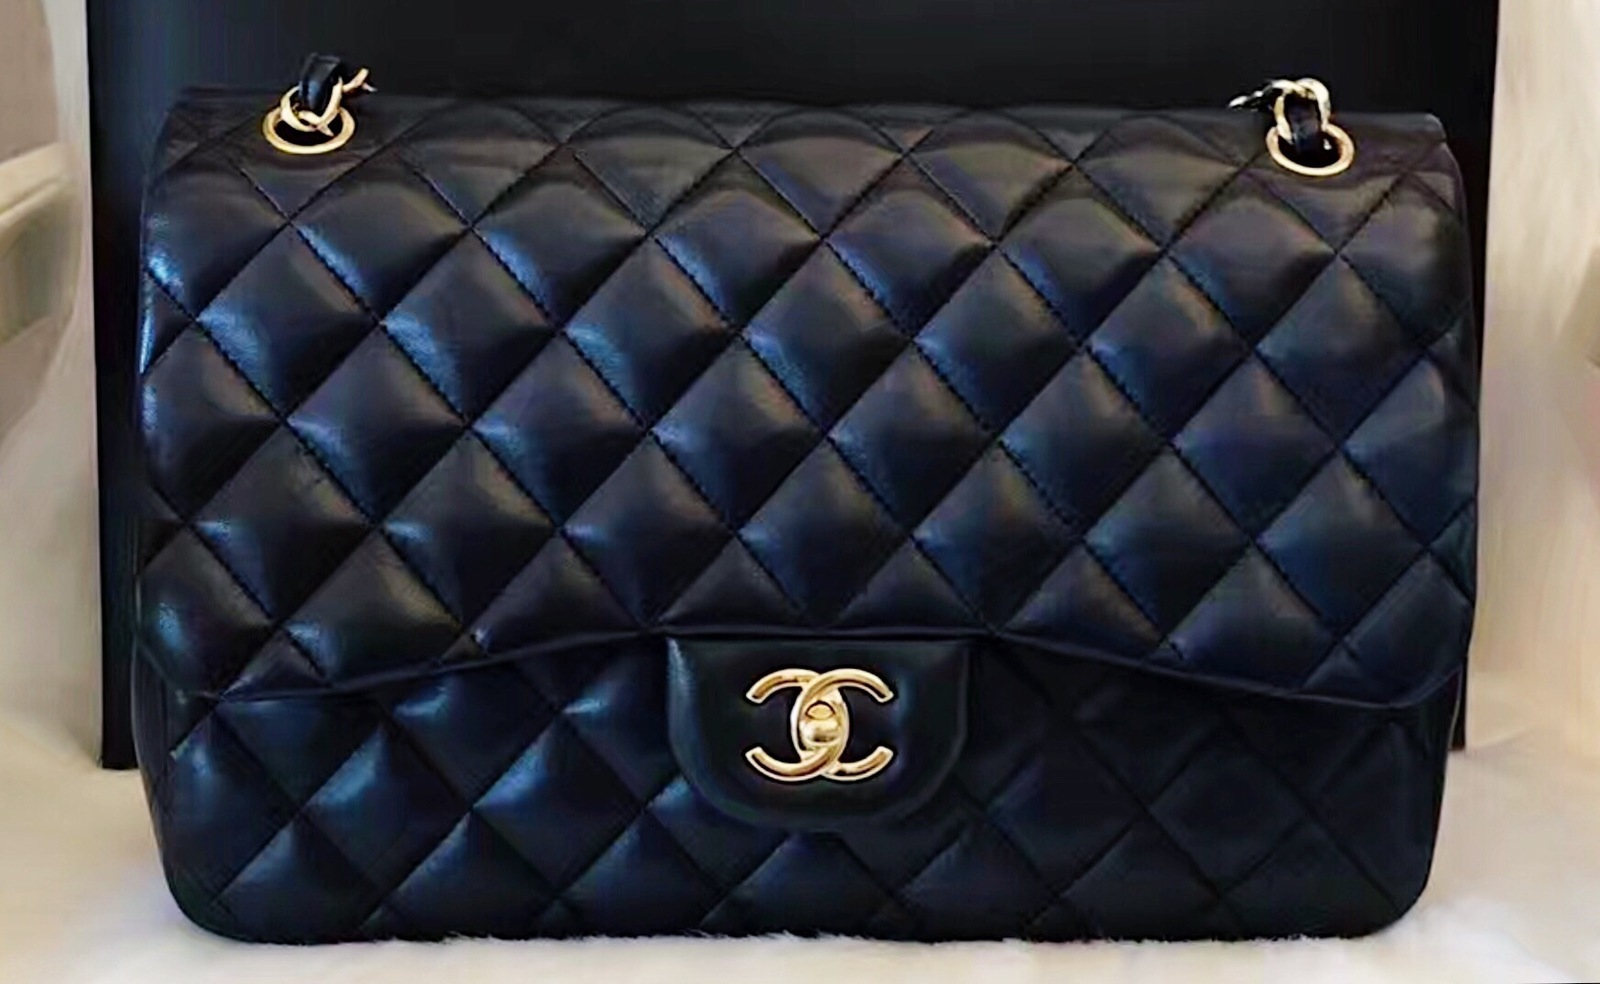 9f62e8d4db1213 100% Authentic Chanel 2015 Black Quilted Lambskin Jumbo Classic ...